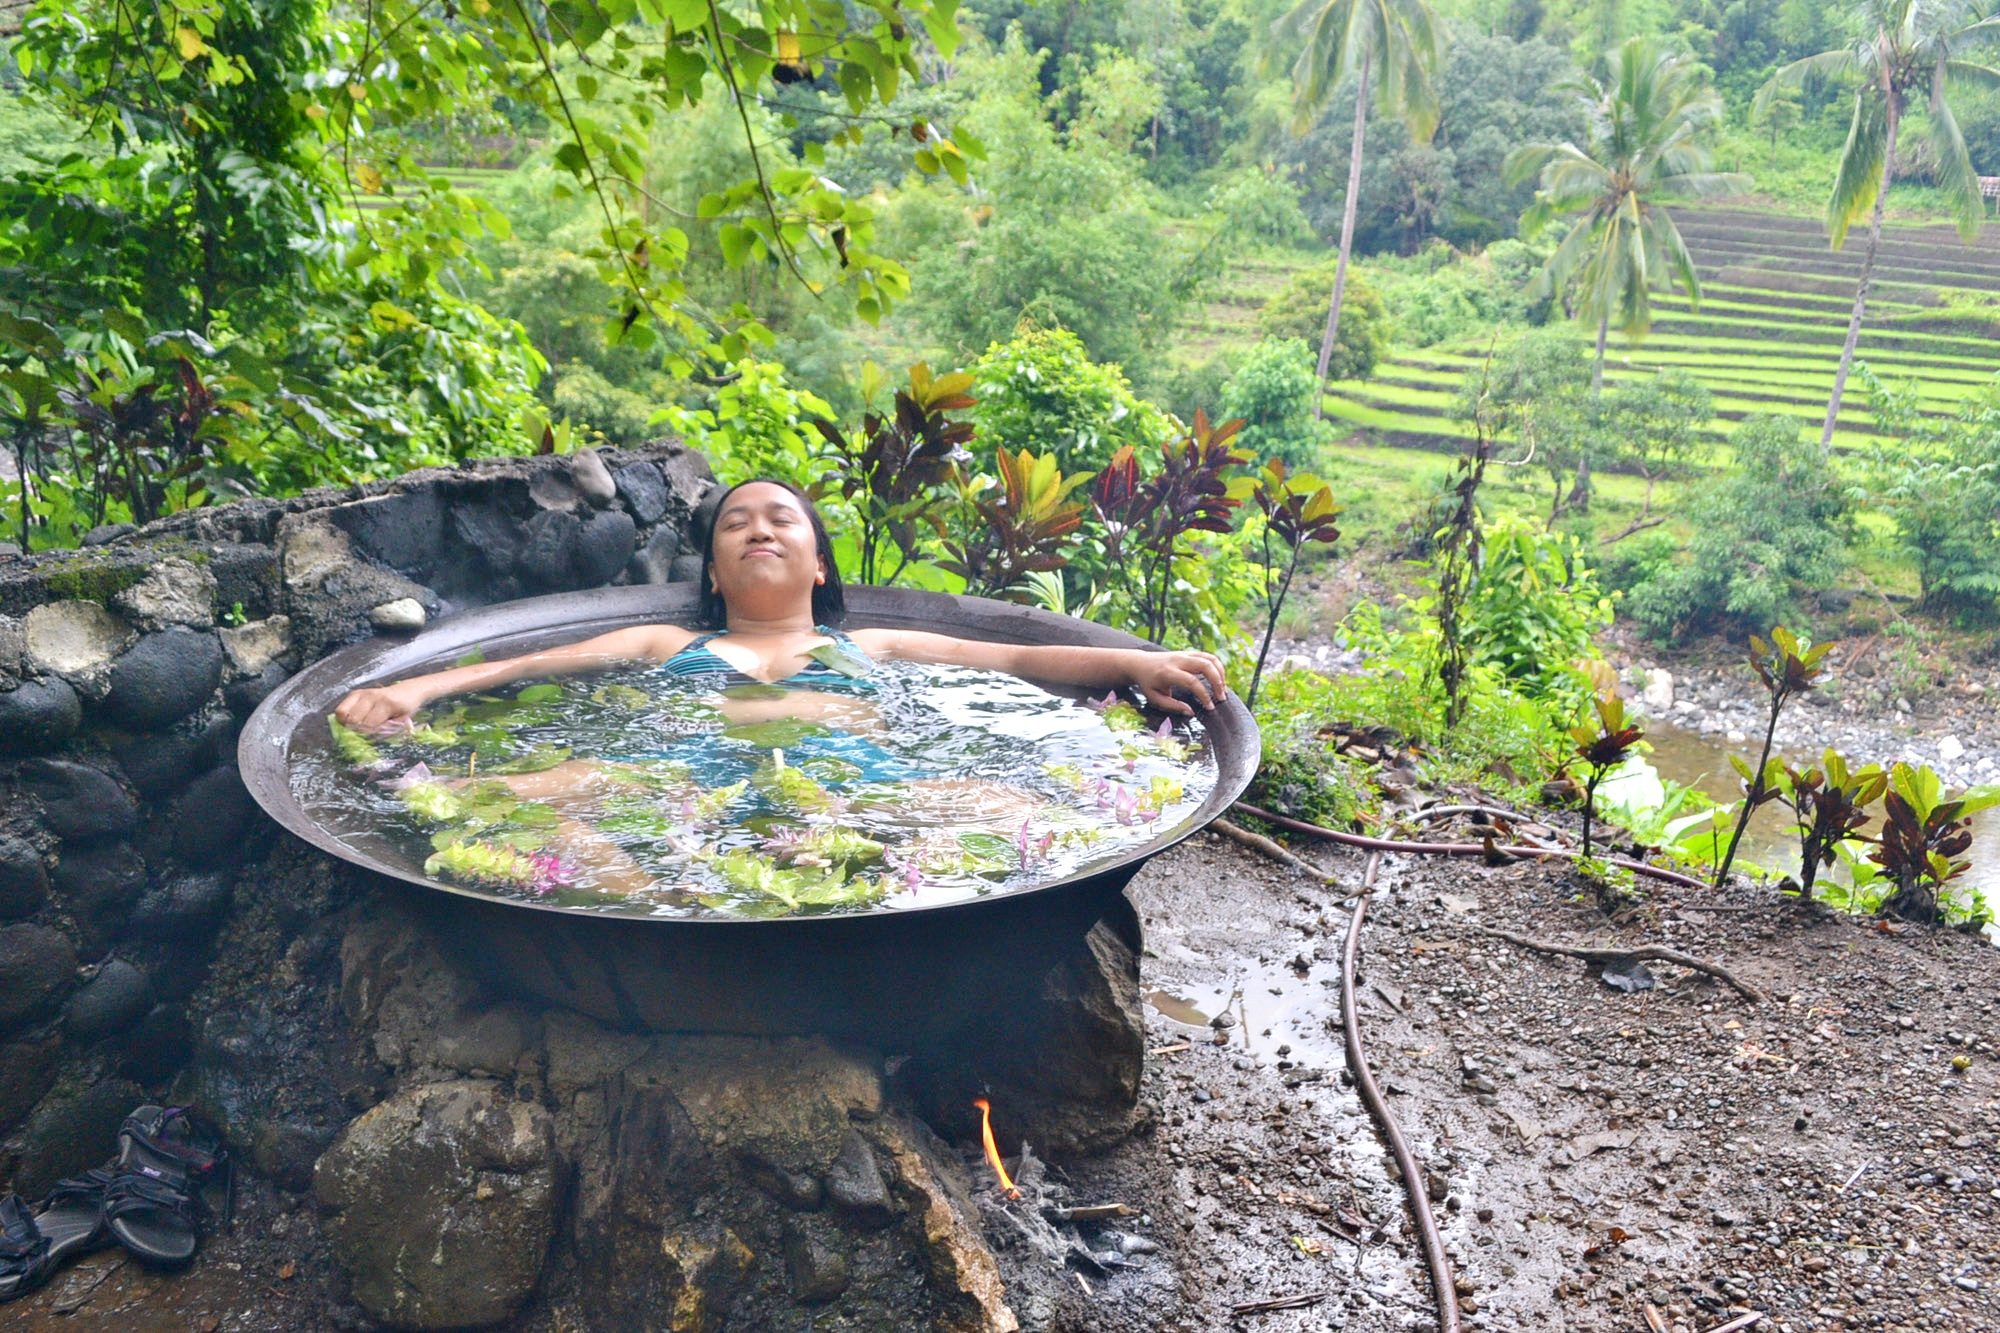 Kawa Bath in Tibiao. Photo by Gael Hilotin